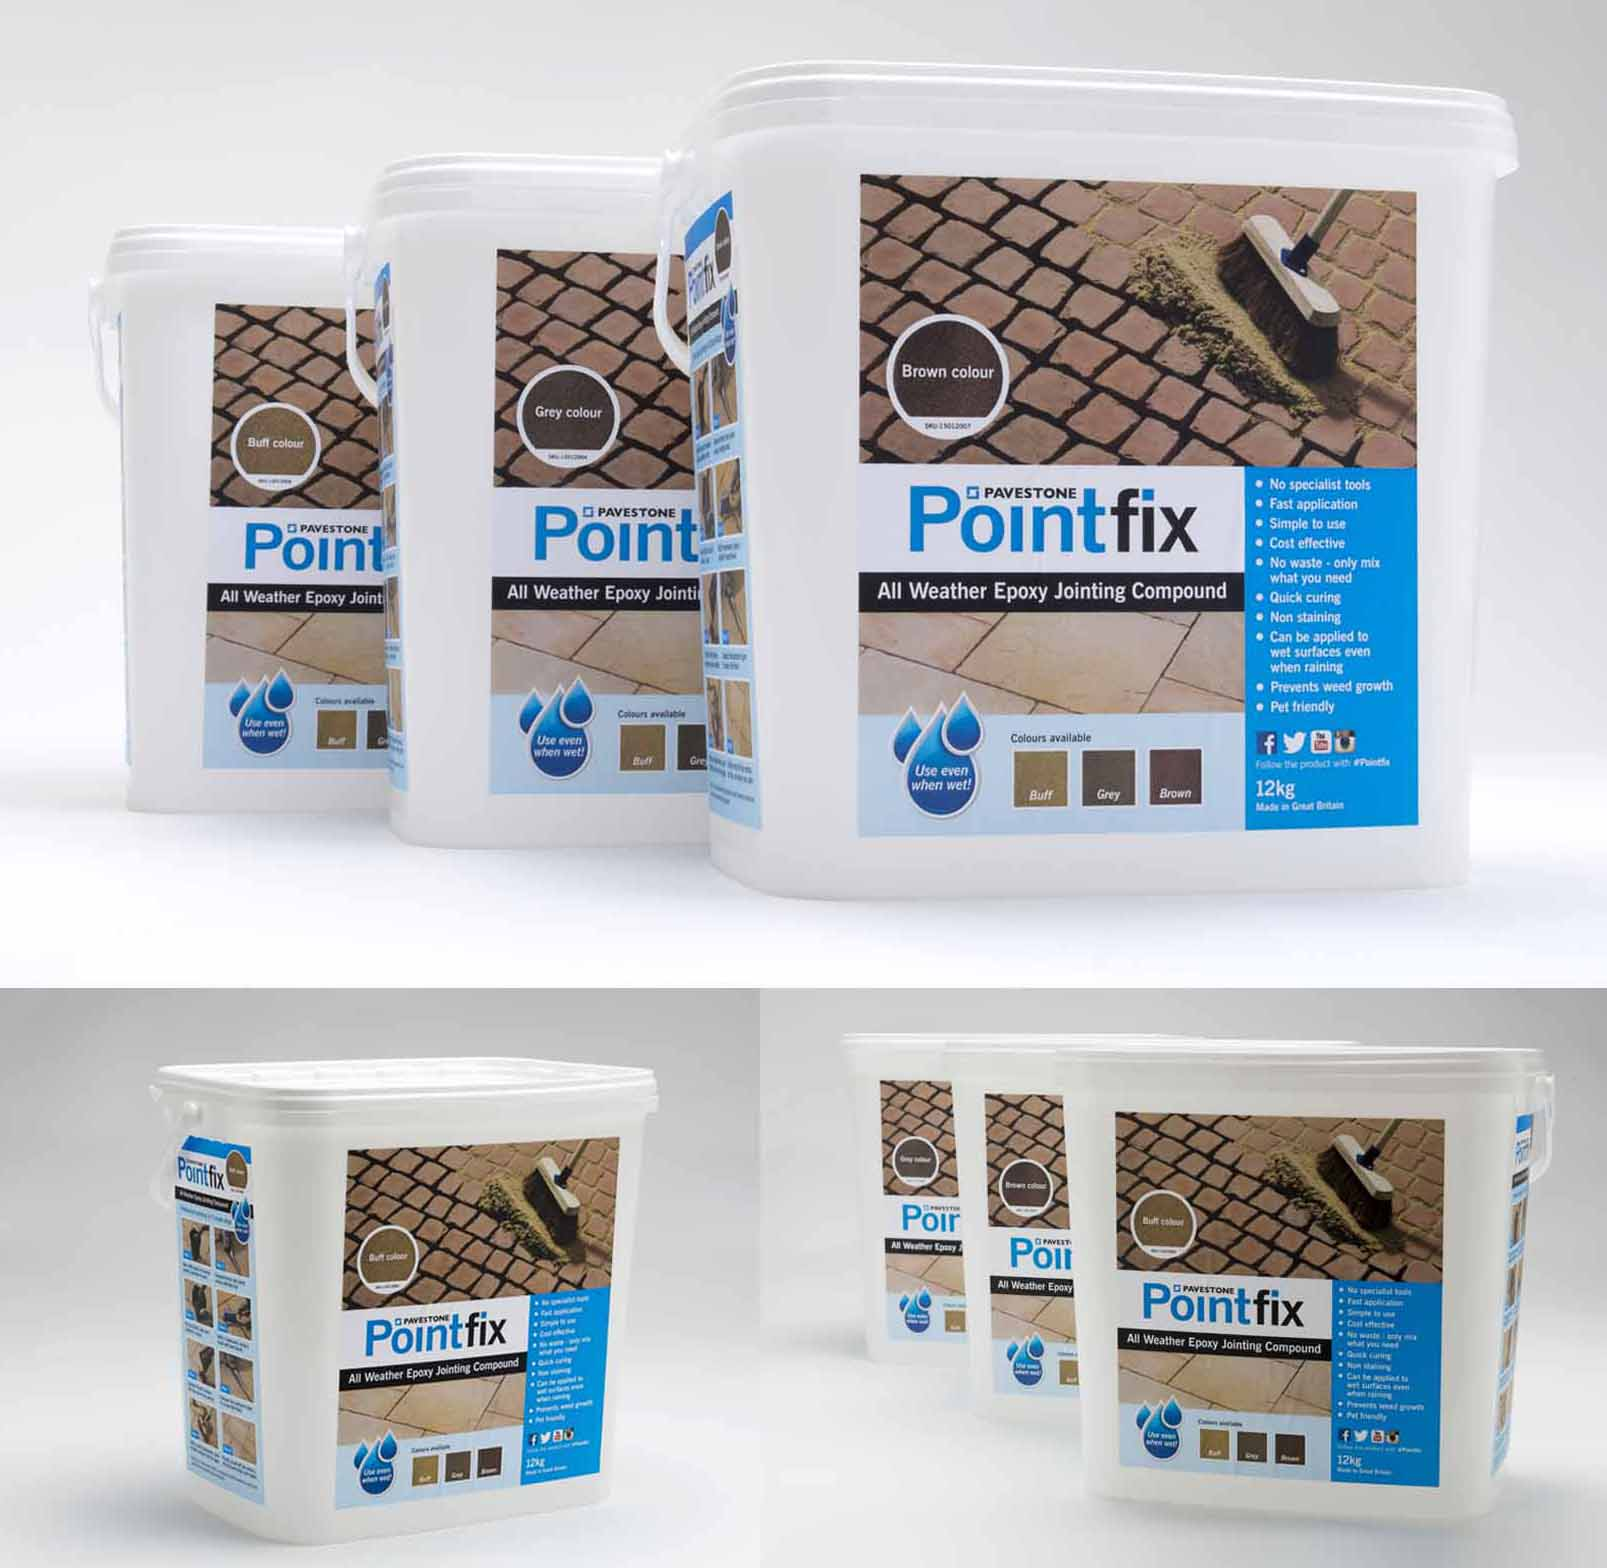 Point fix - New Product Photography by dpix